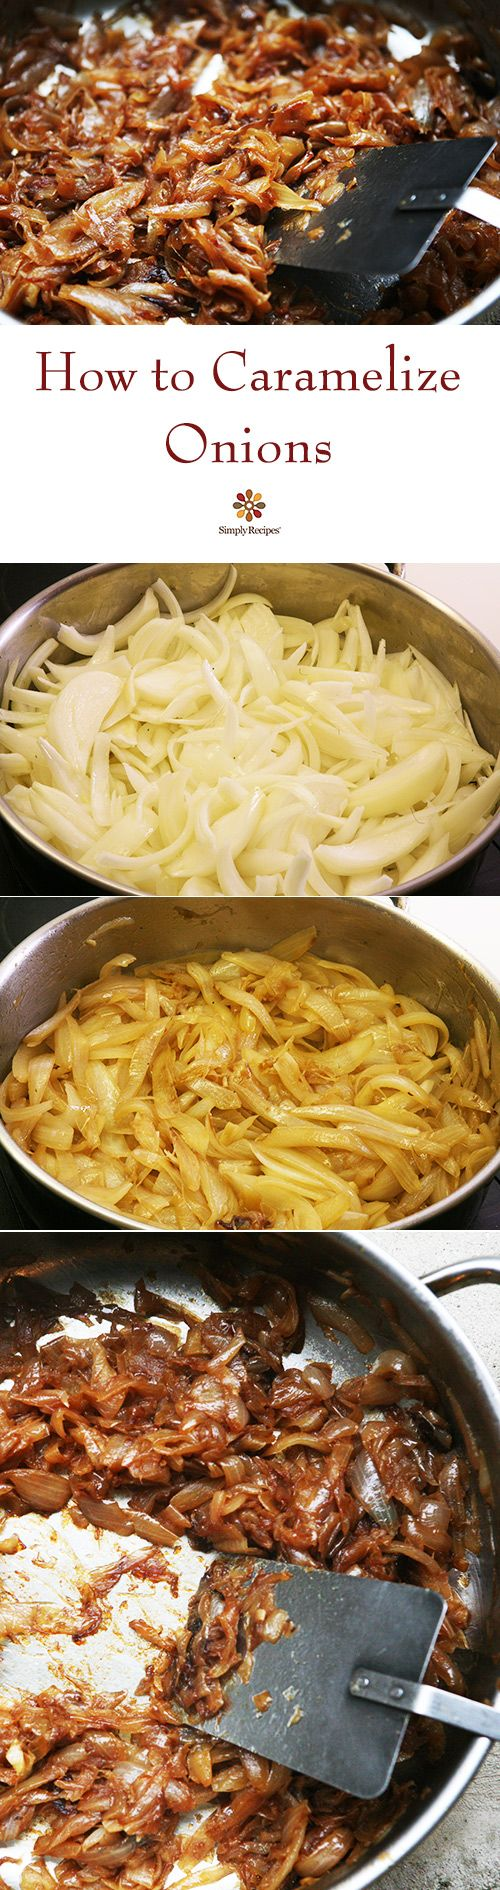 Caramelized onions add magic to any dish that uses onions. Here's an easy tutorial on how to make them! On SimplyRecipes.com @simplyrecipes